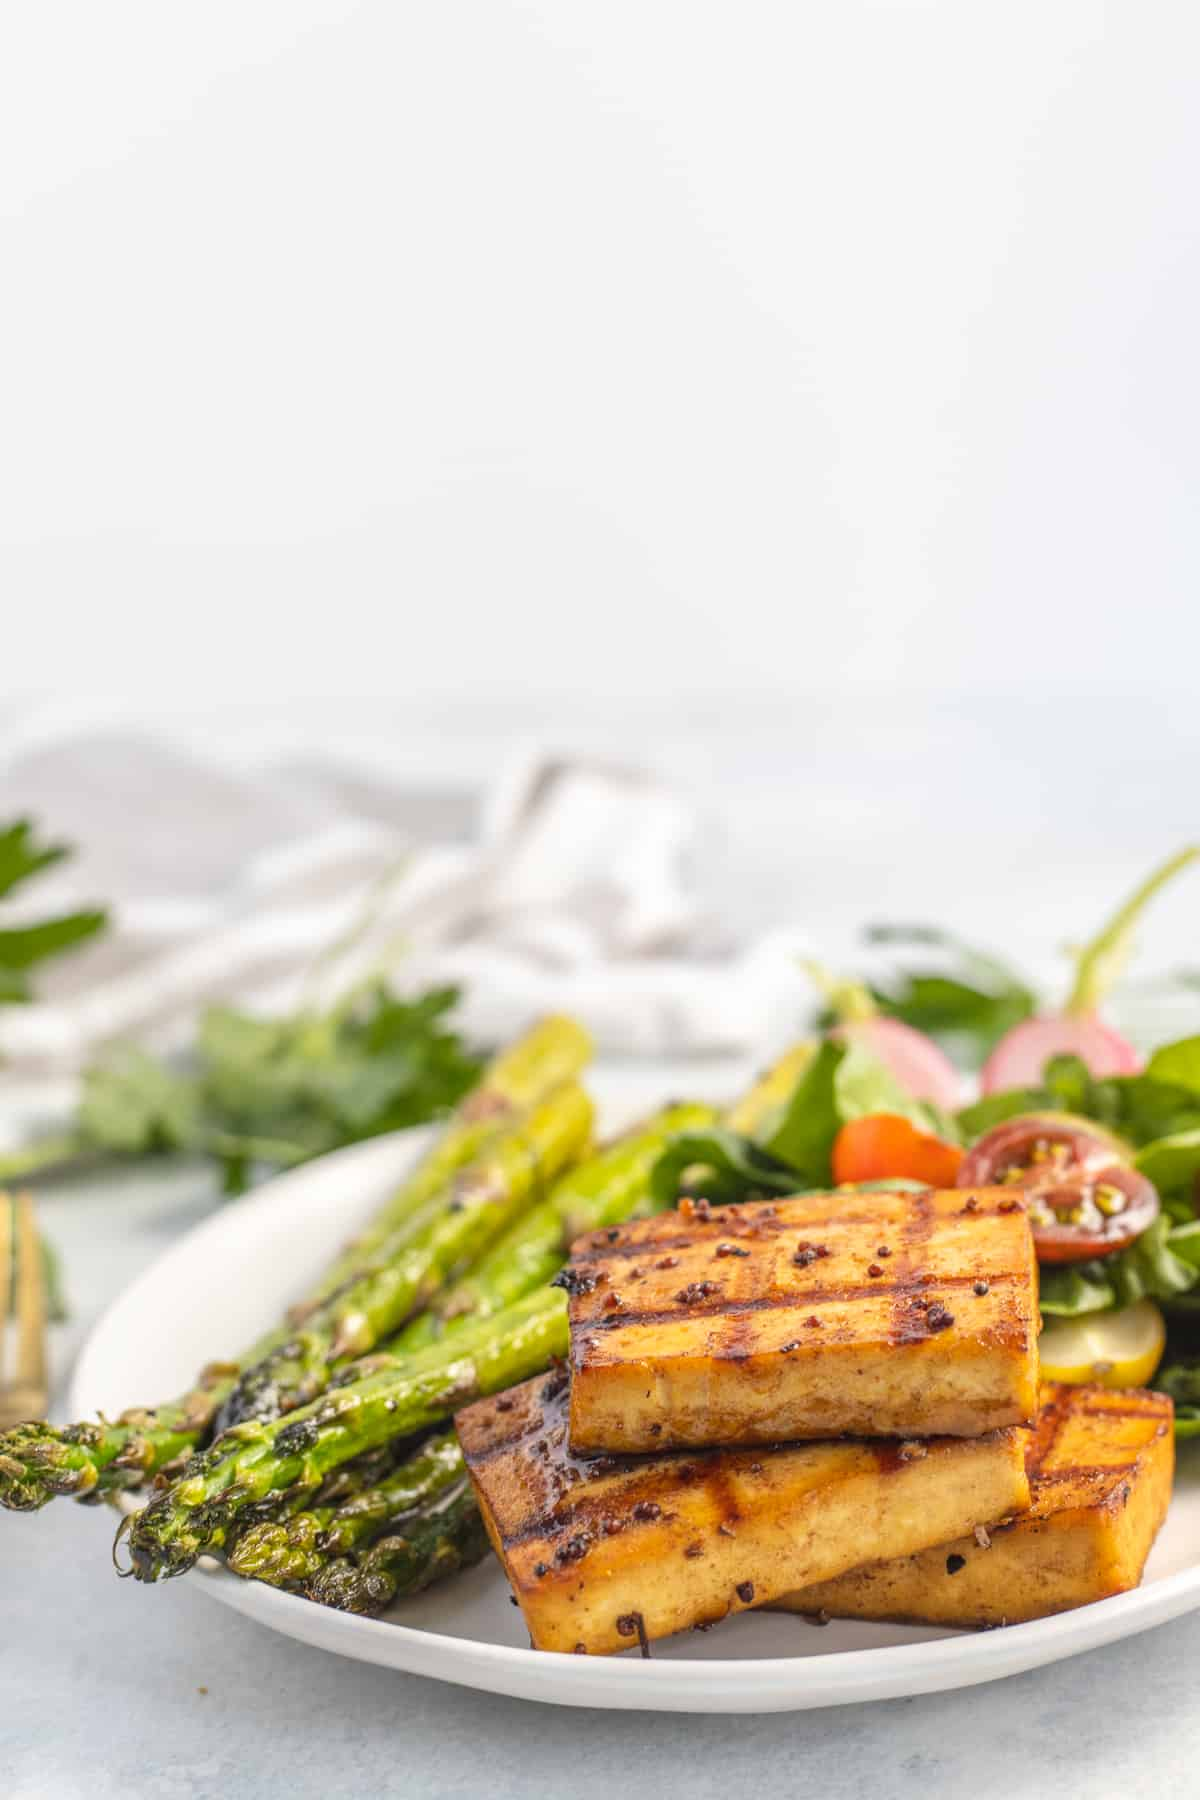 Marinated balsamic tofu in a plate with asparagus and salad